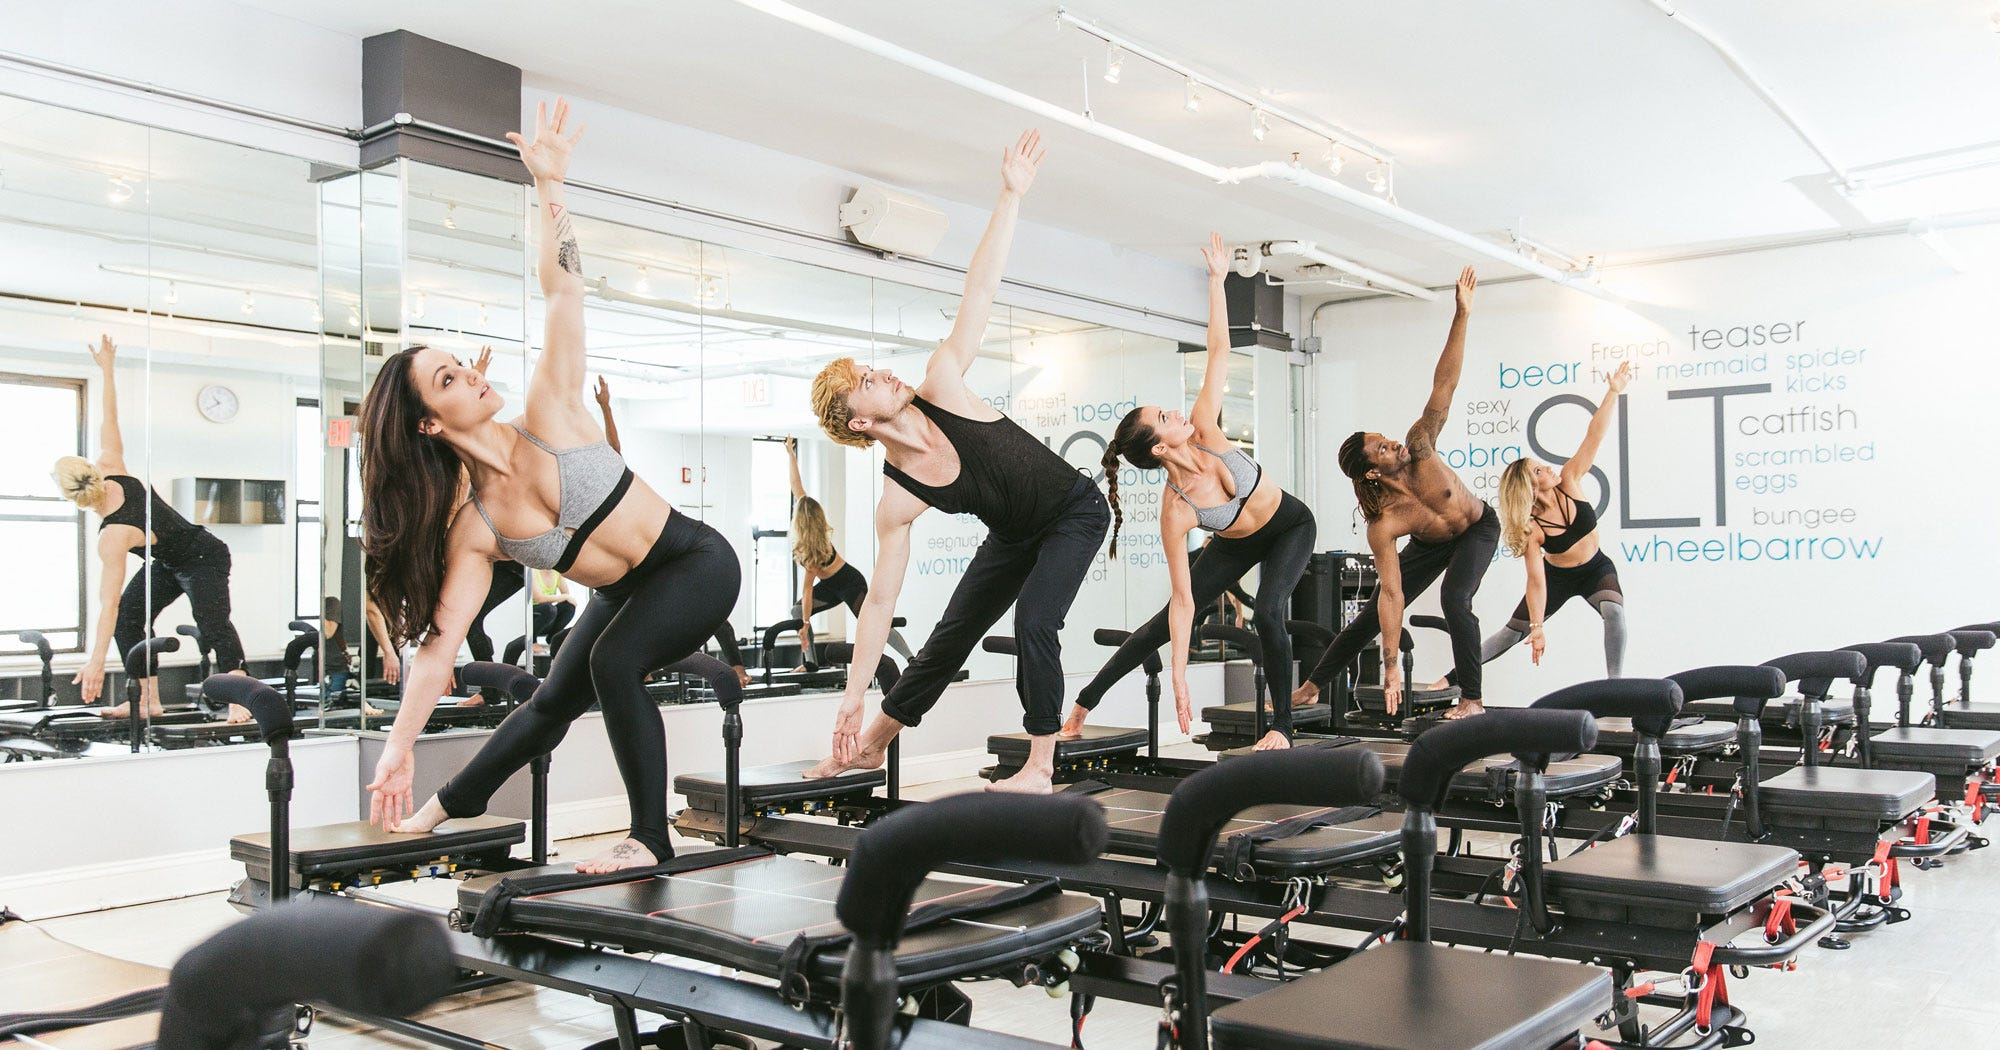 NYC Fitness Classes Reviews - Best Workout Studio Guide